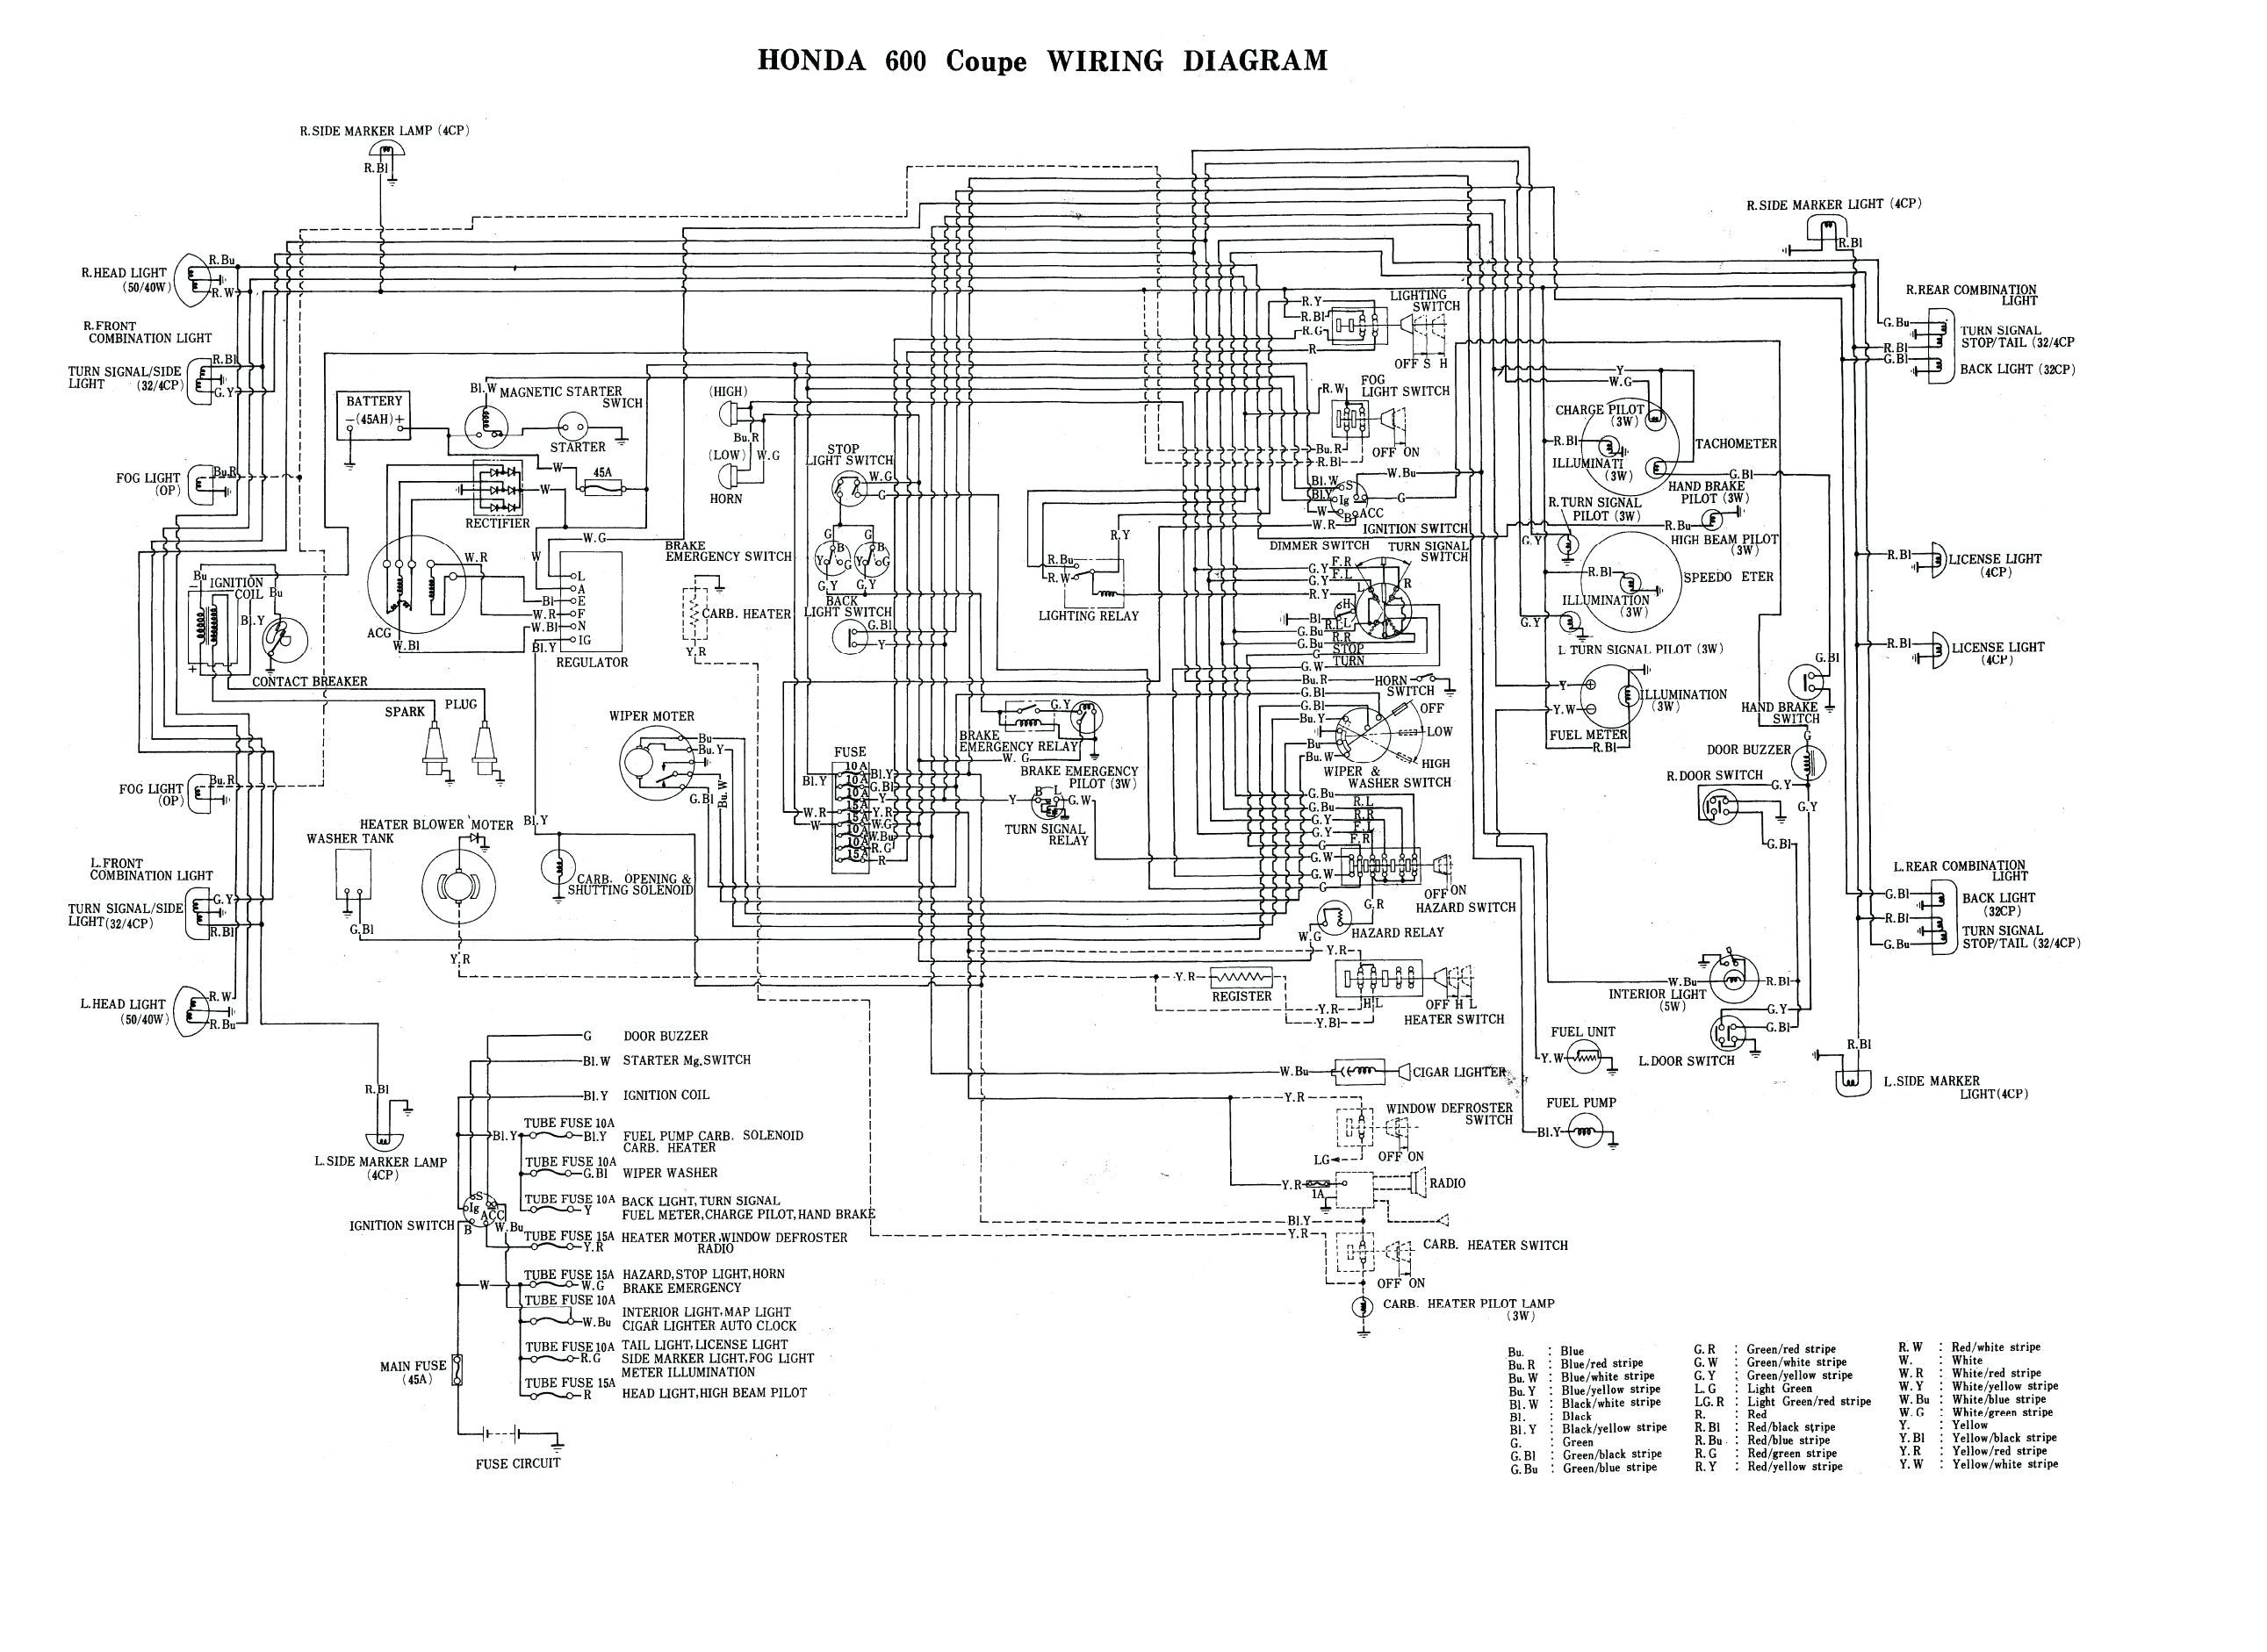 2007 Honda Accord Engine Diagram 1997 Honda Accord Engine Diagram Wiring Diagram Used Of 2007 Honda Accord Engine Diagram 93 Civic Wiring Diagram Wiring Diagram toolbox